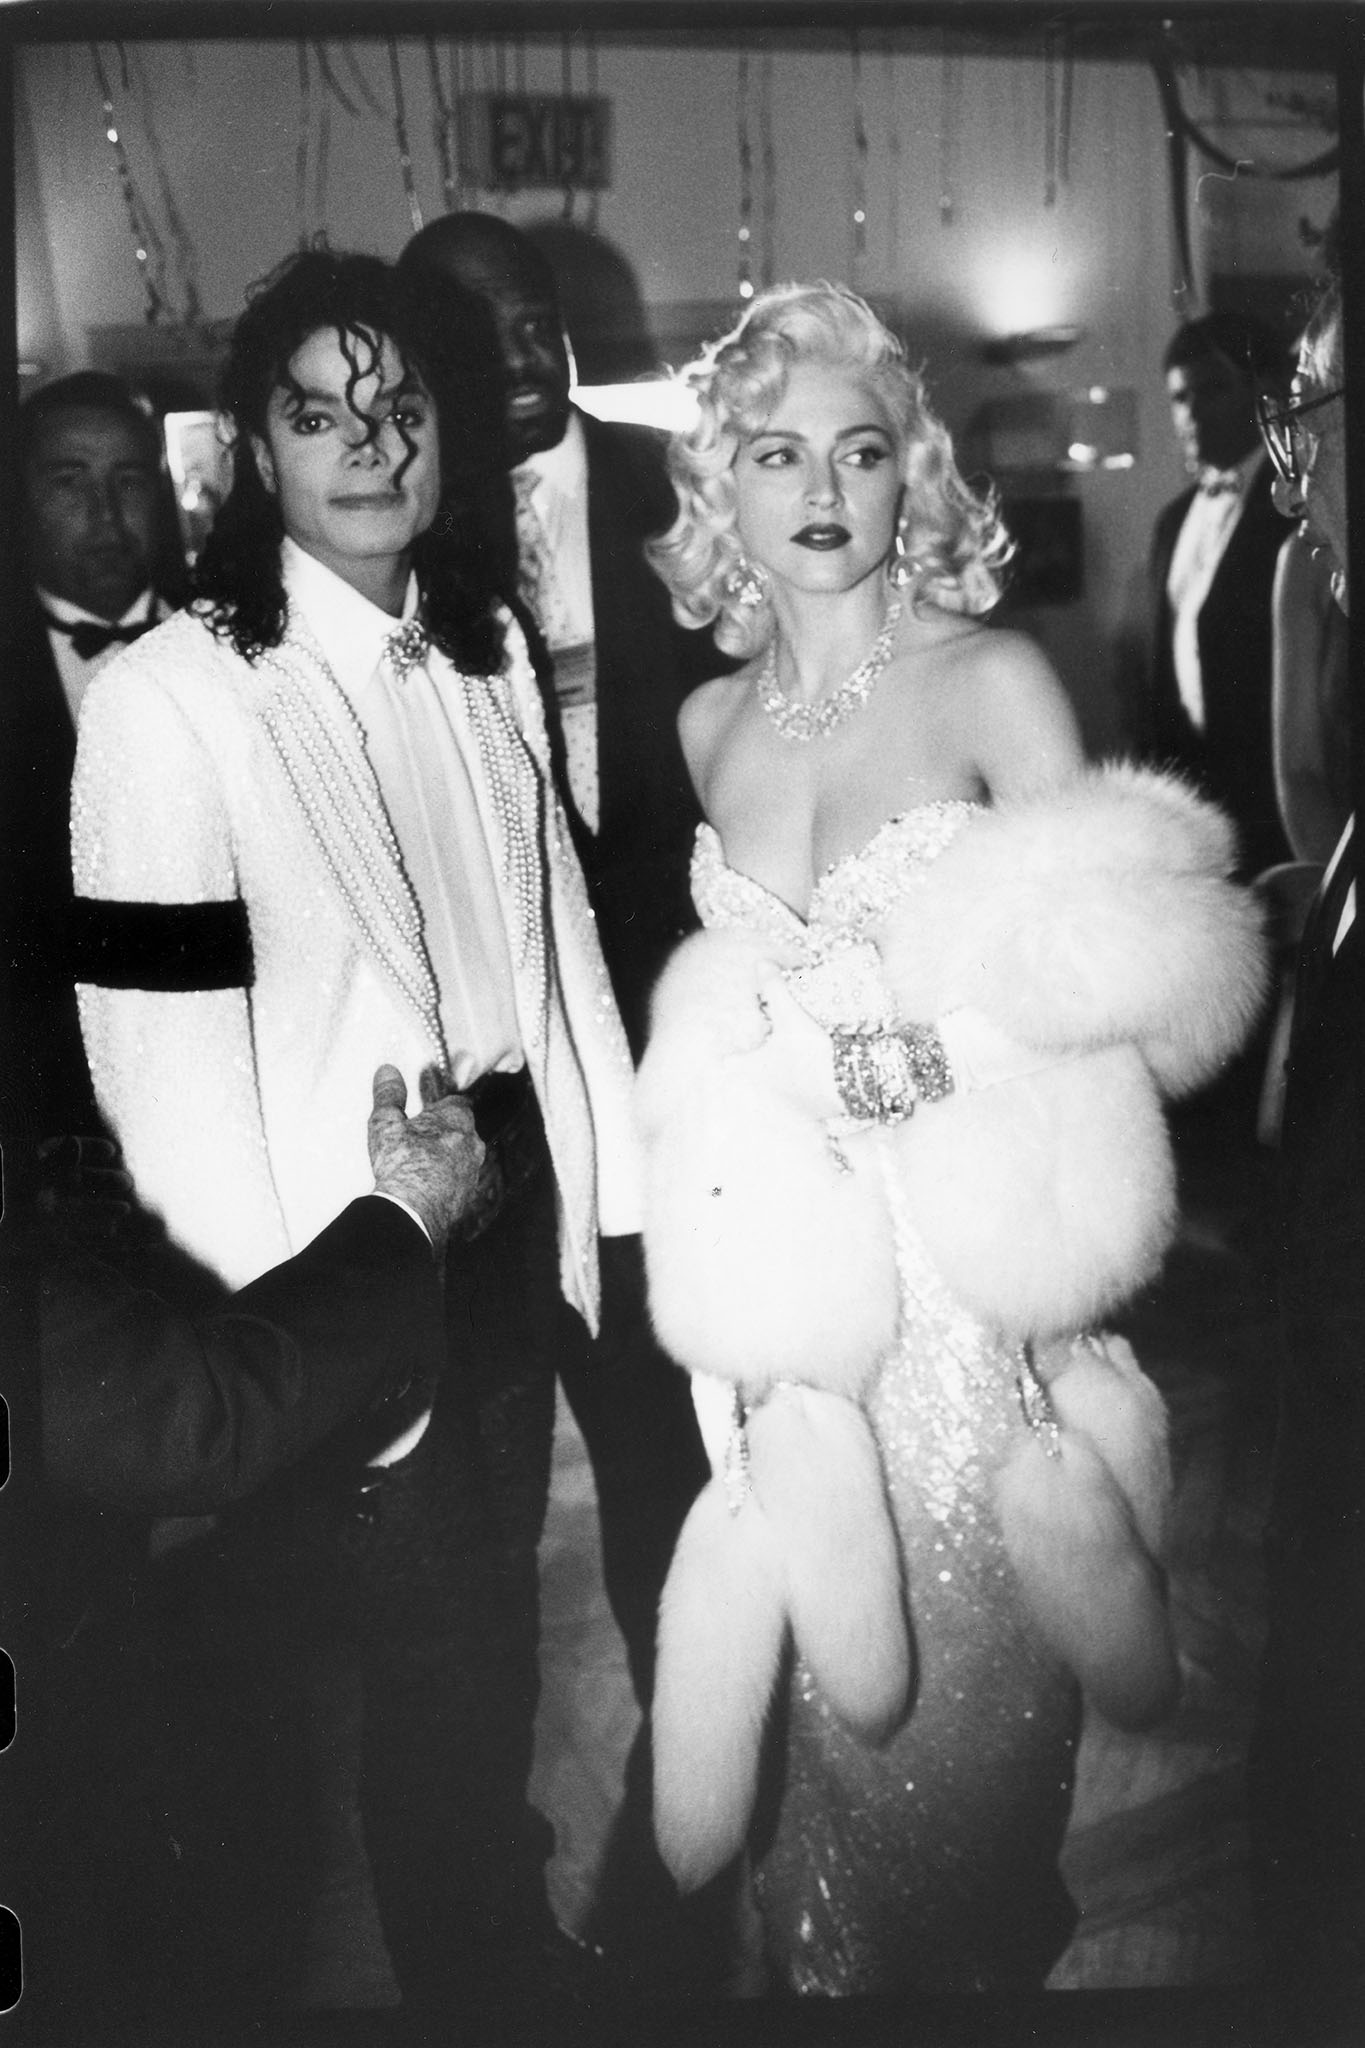 """Madonna and Michael Jackson attend Swifty Lazar's after party for the Academy Awards on March 25, 1991 in Los Angeles, California.Article title: """"Eye: To Tell the 'Truth' """""""